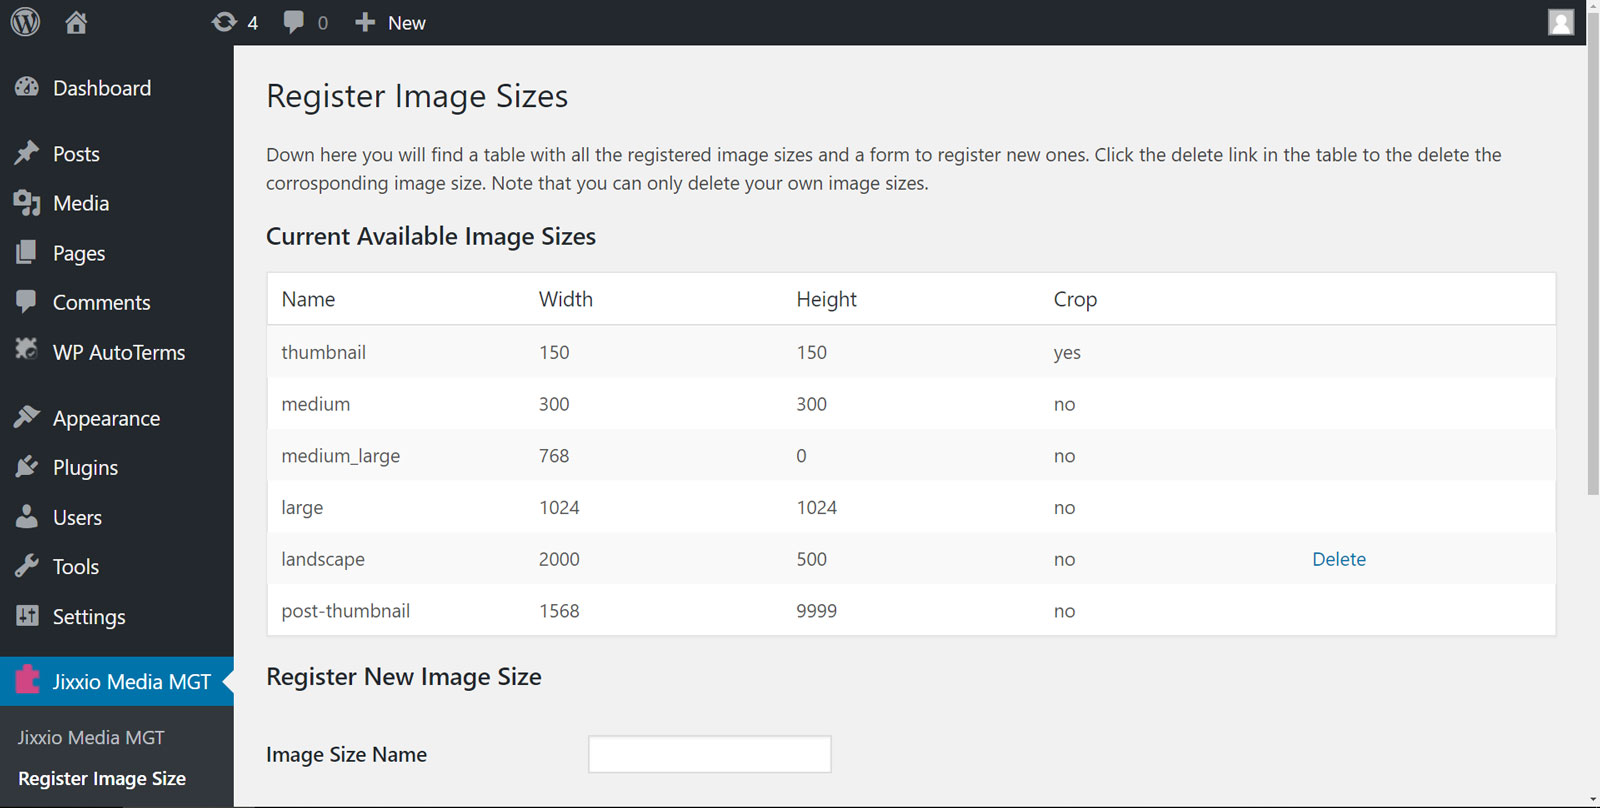 Add your own image sizes